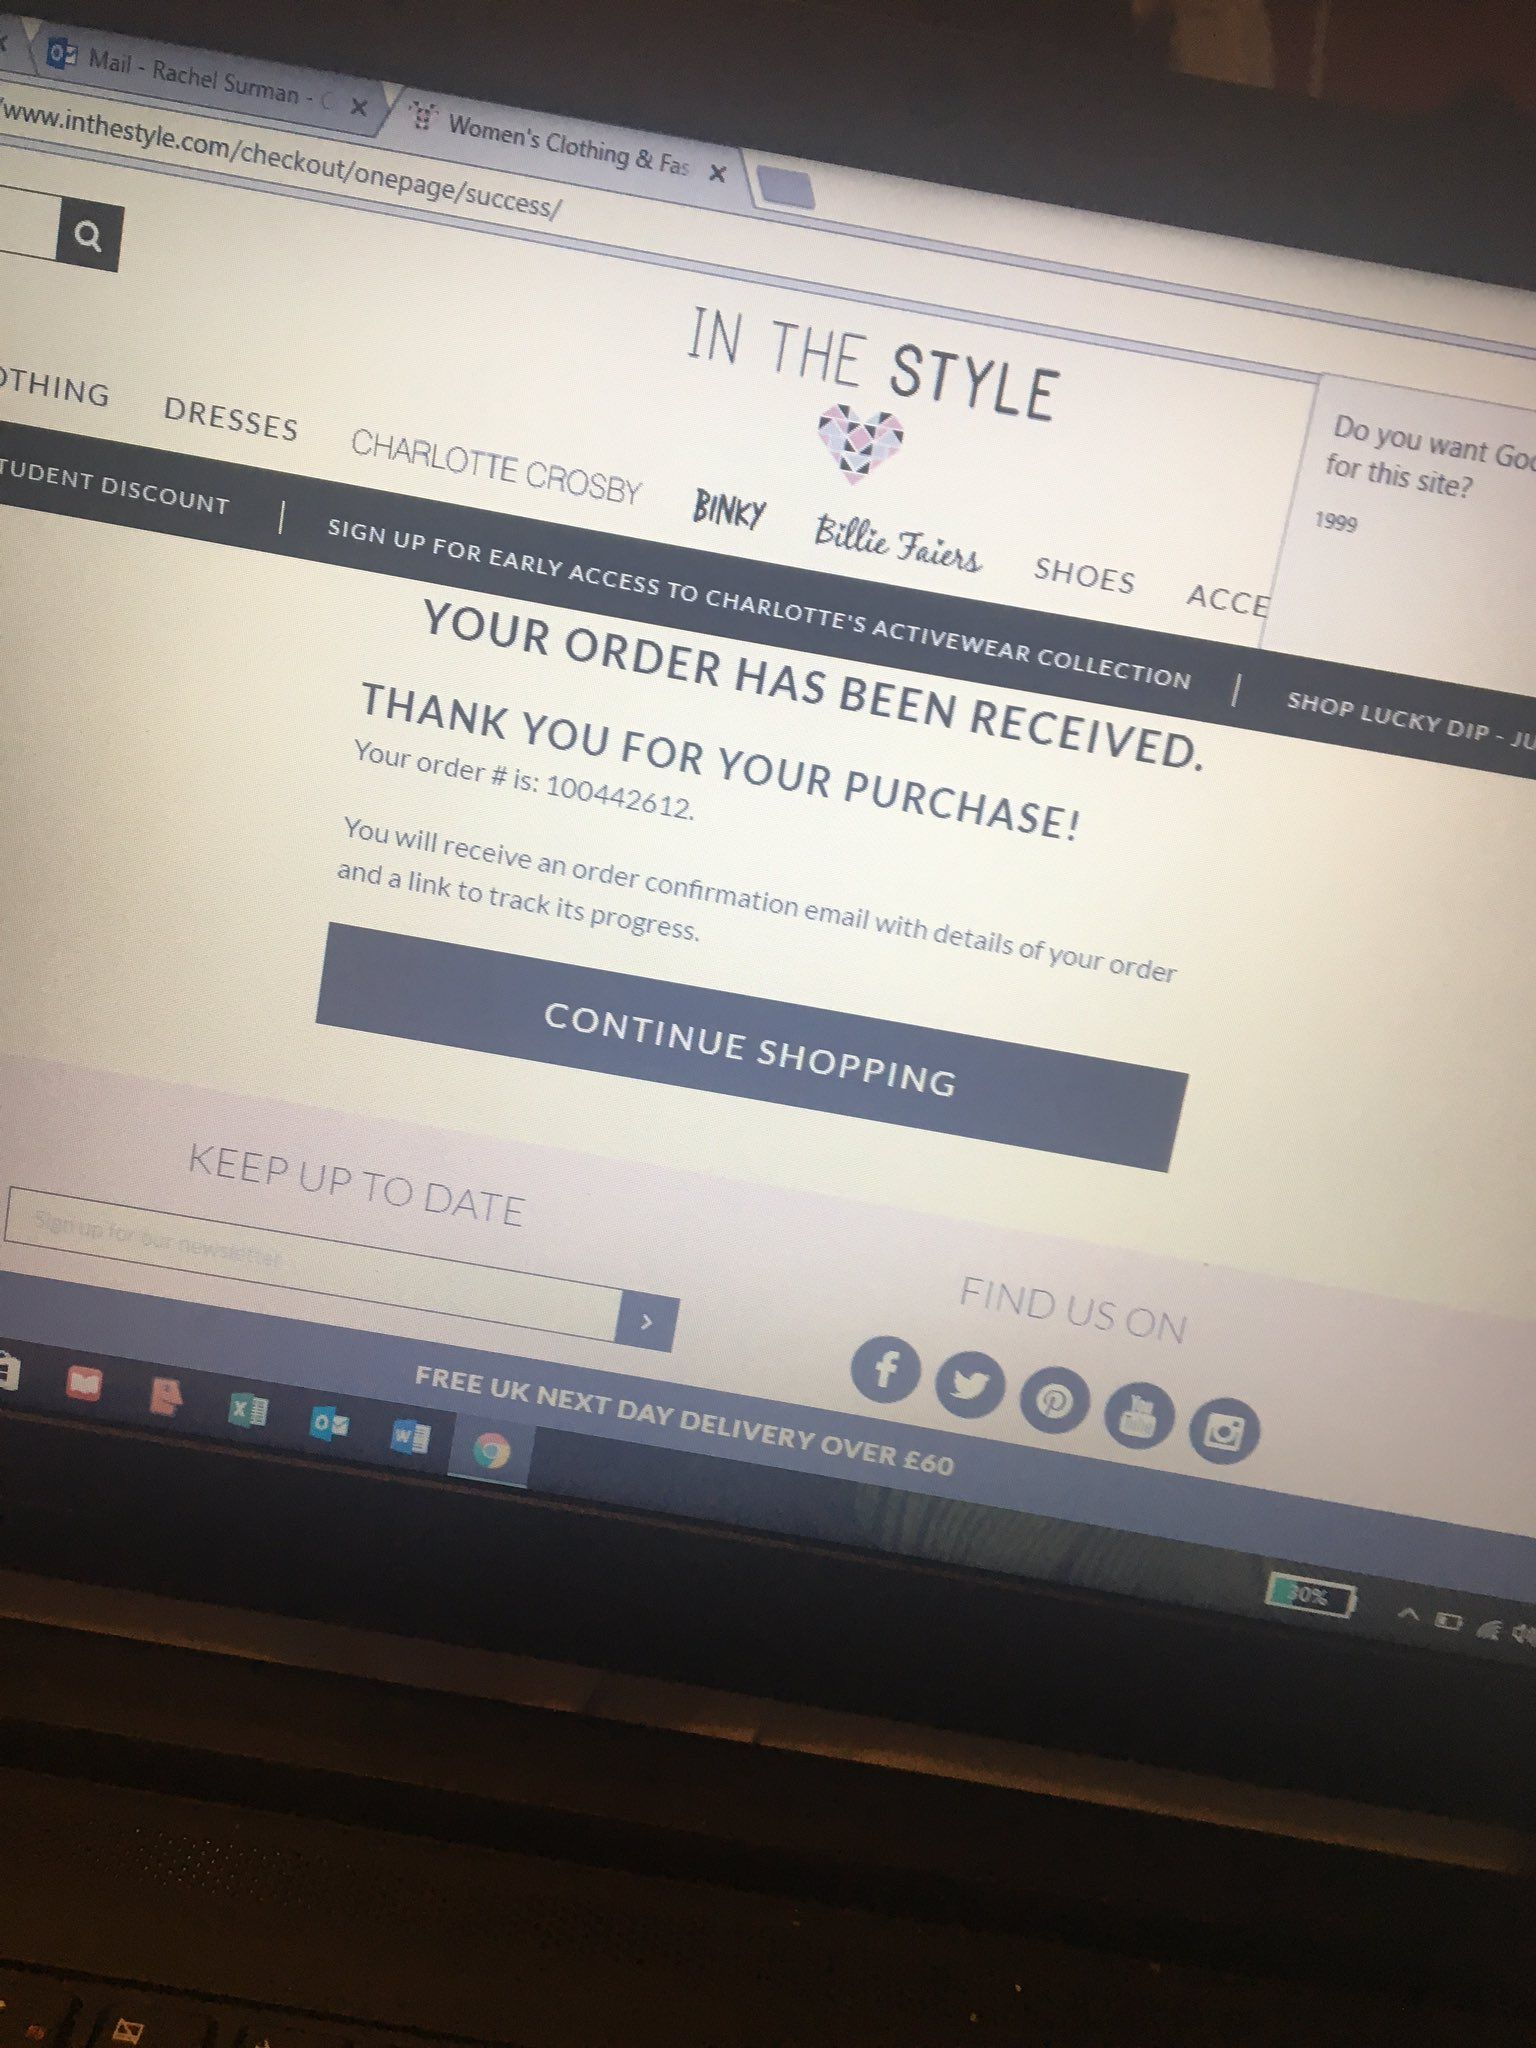 @inthestyleUK : RT @rachel_surman: Basically just bought all of @Charlottegshore 's #activewear  @inthestyleUK https://t.co/Evdm6DMsGM